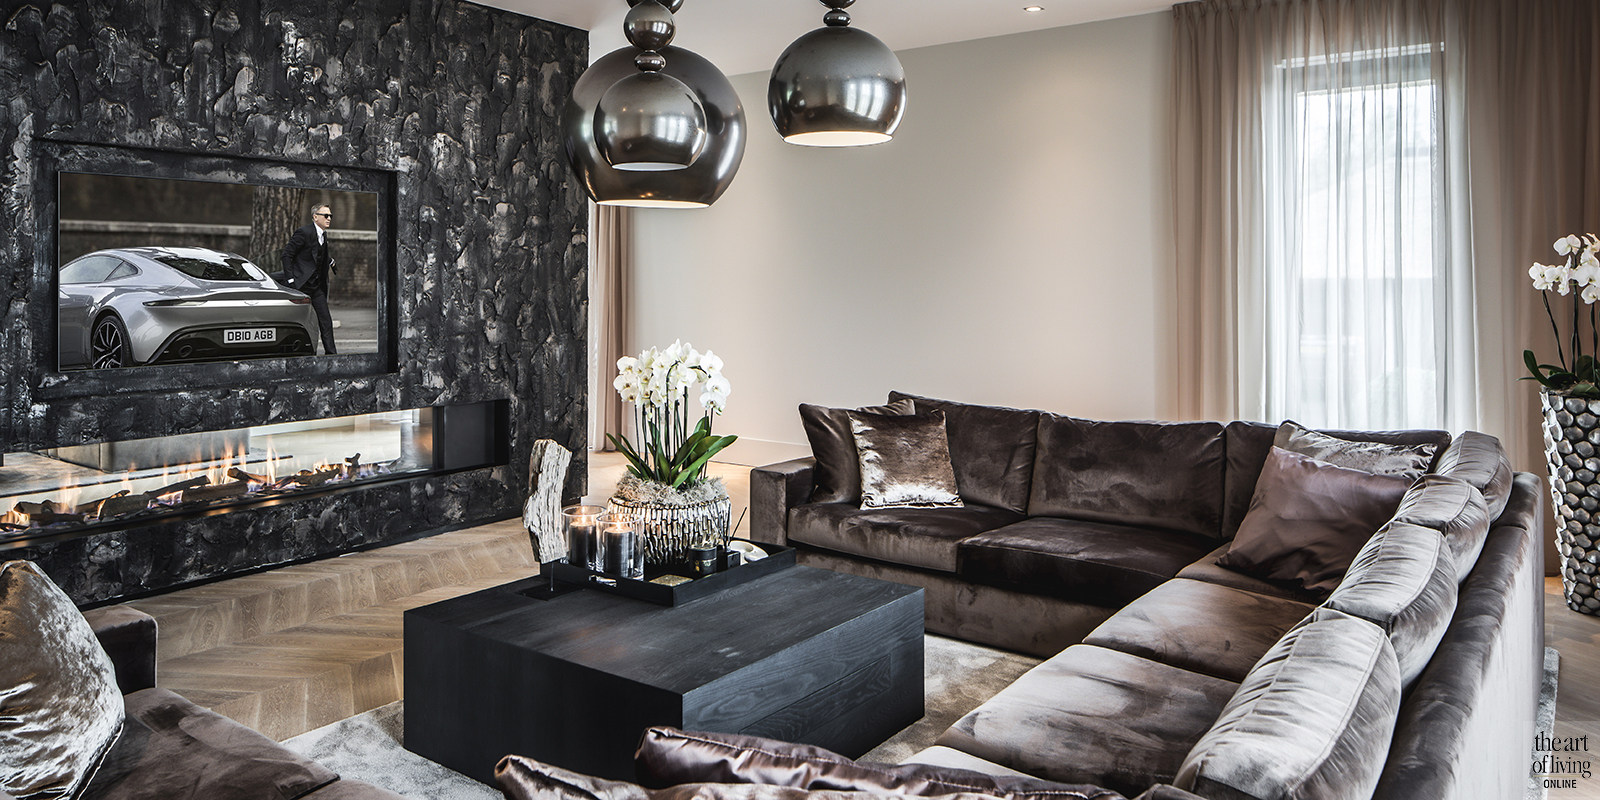 Luxe woonkamer inrichten cindy philips the art of living nl for Interieur luxe